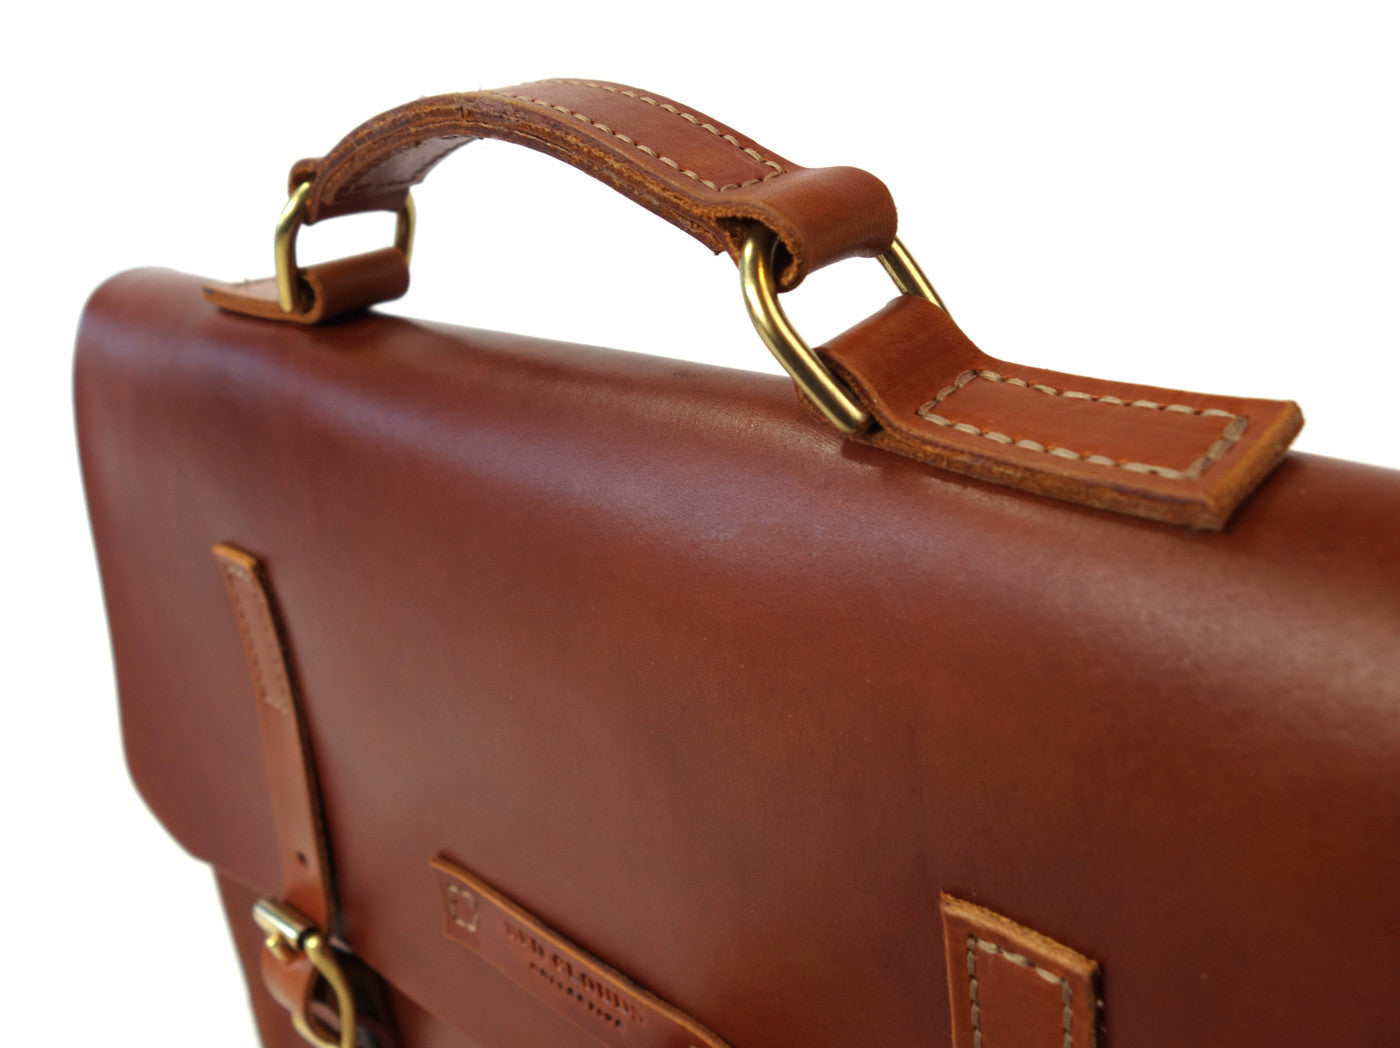 Briefcase, Leather computer bag, computer case, leather bag, laptop case, leather laptop bag, leather carrying case for your laptop and documents. A classic look and feel meets the needs of the contemporary world.